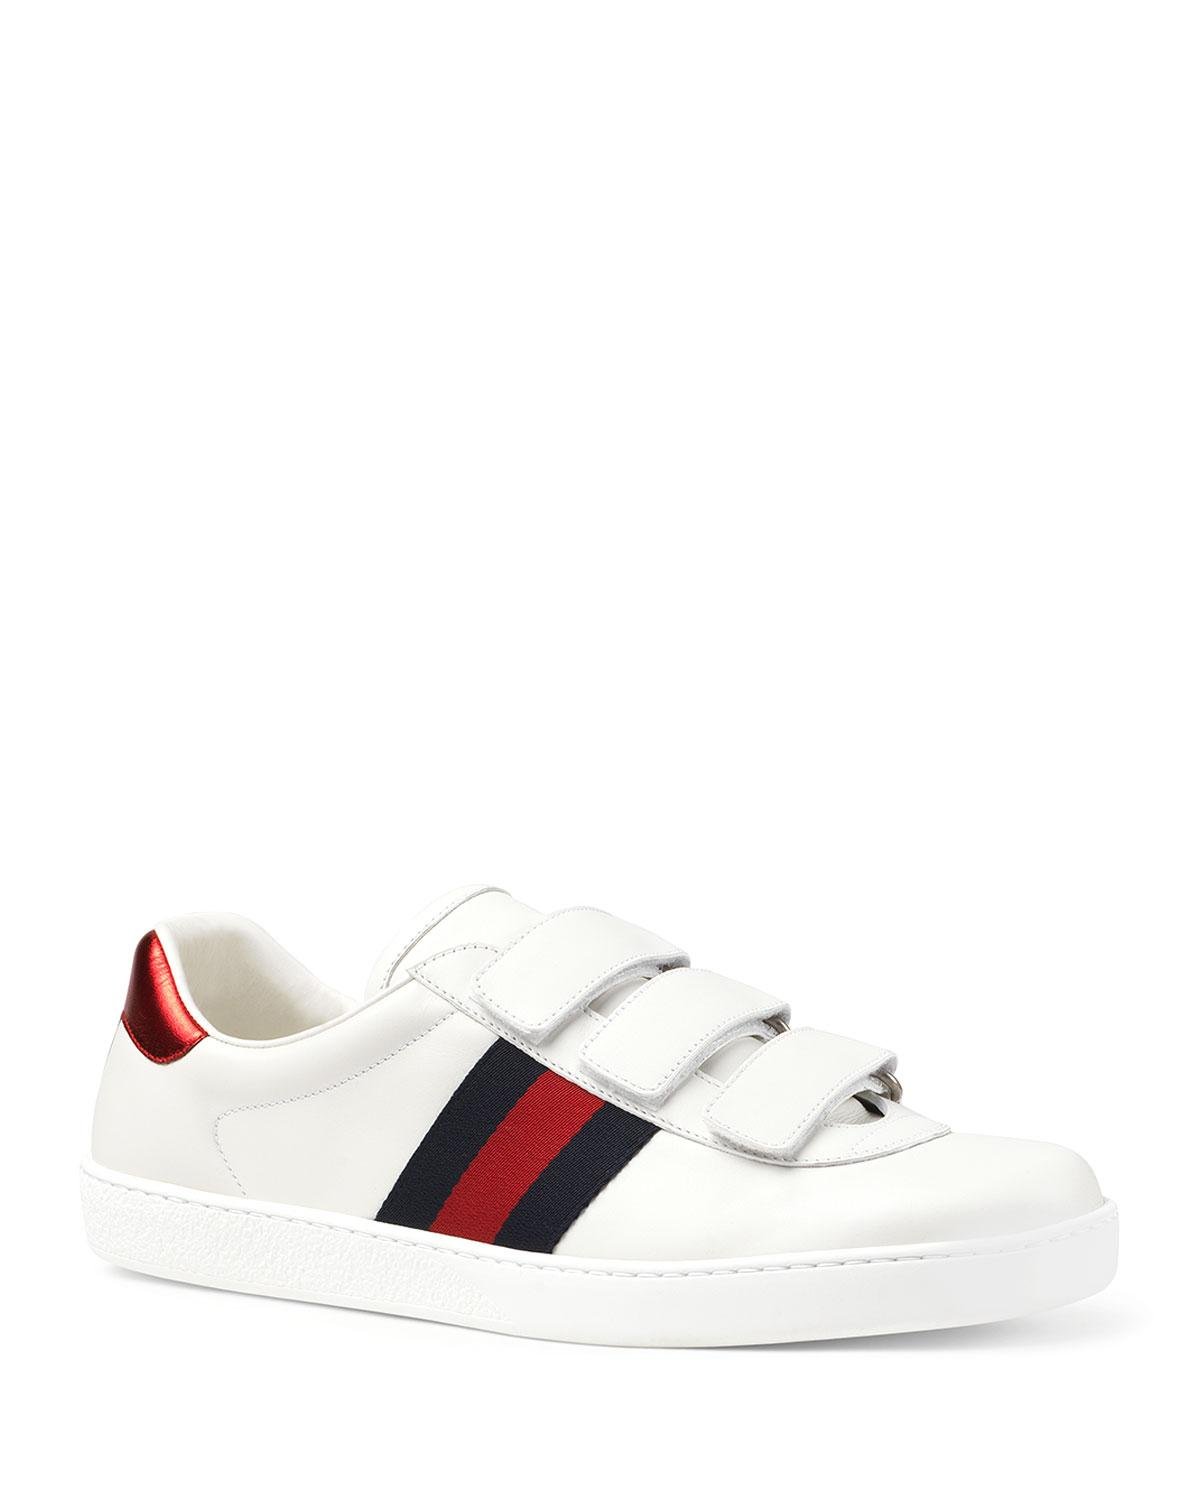 7f0f2ae1ea1 Lyst - Gucci Men s Leather Grip-strap Sneakers With Web in White for Men